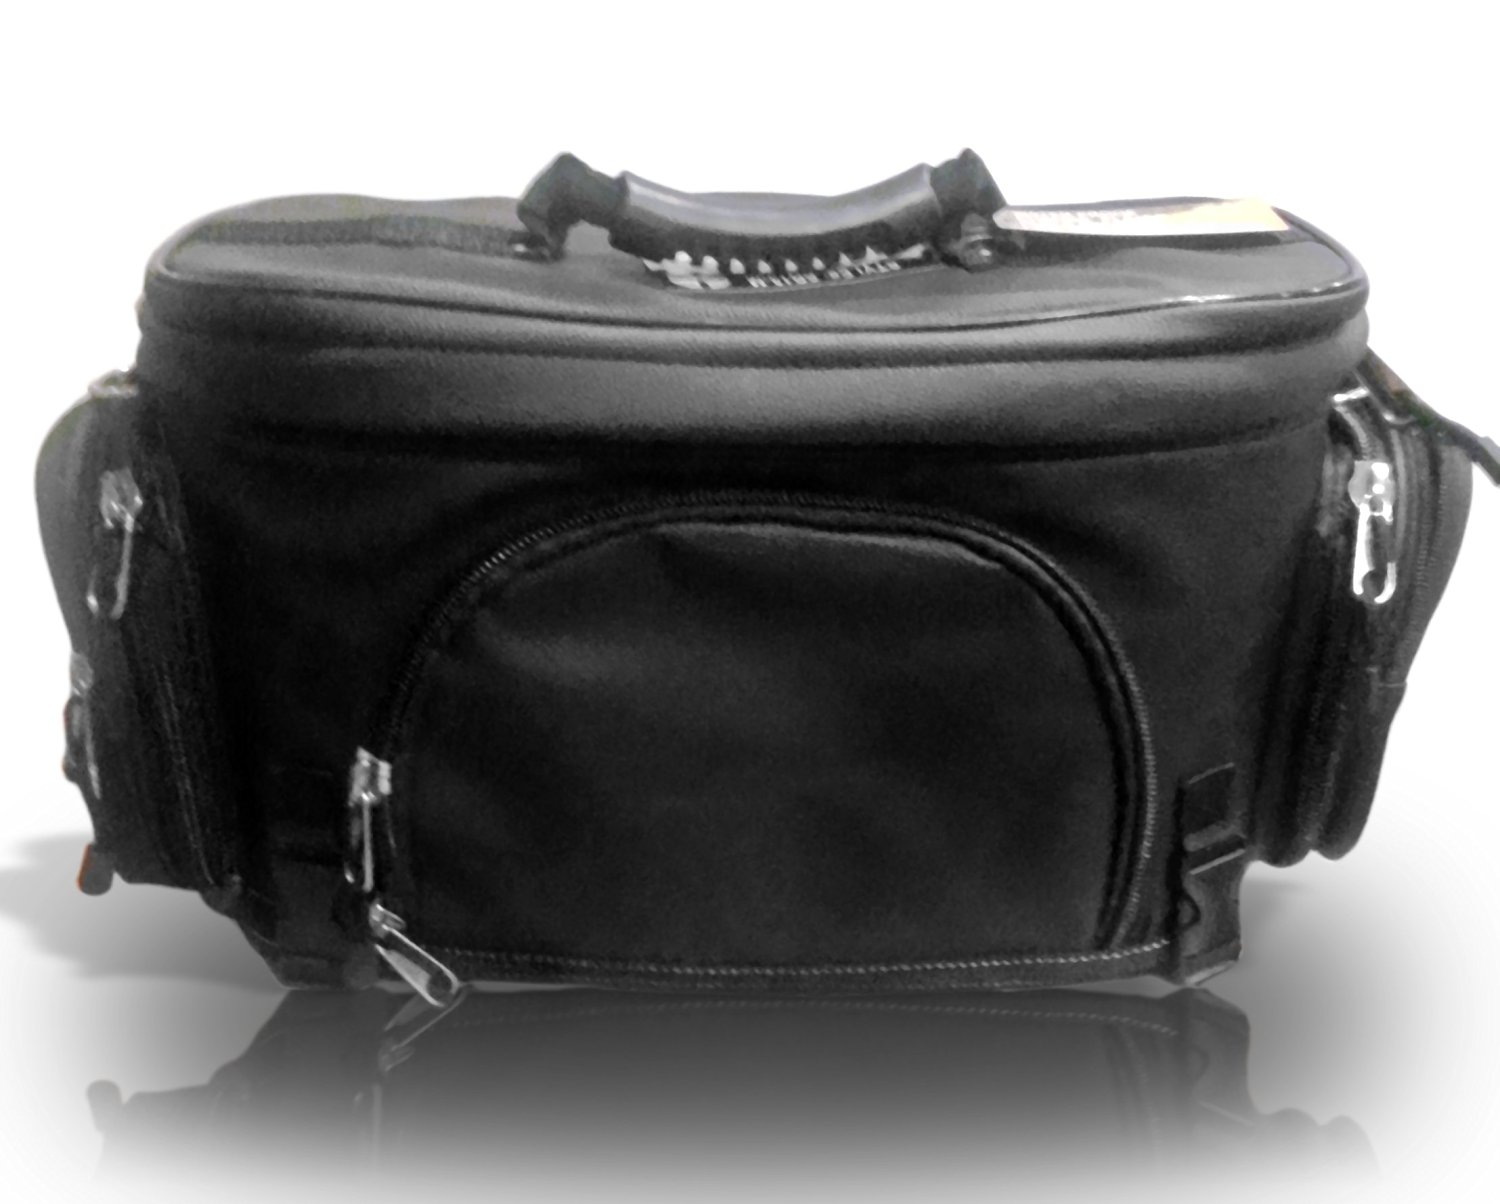 """The Nekid Cow Brand 16"""" Premium Waterproof Motorcycle Black PVC Leather Like Sissy Bar Bags For Travel - GUARANTEED Luggage Tool Overnight Bag w/Quick Release Buckles and Top Of The Line, DOUBLE STITCHED PVC Rigid Construction Makes this Accessory Sport Pack a Great Deal - Includes Bonus Motorcycle"""